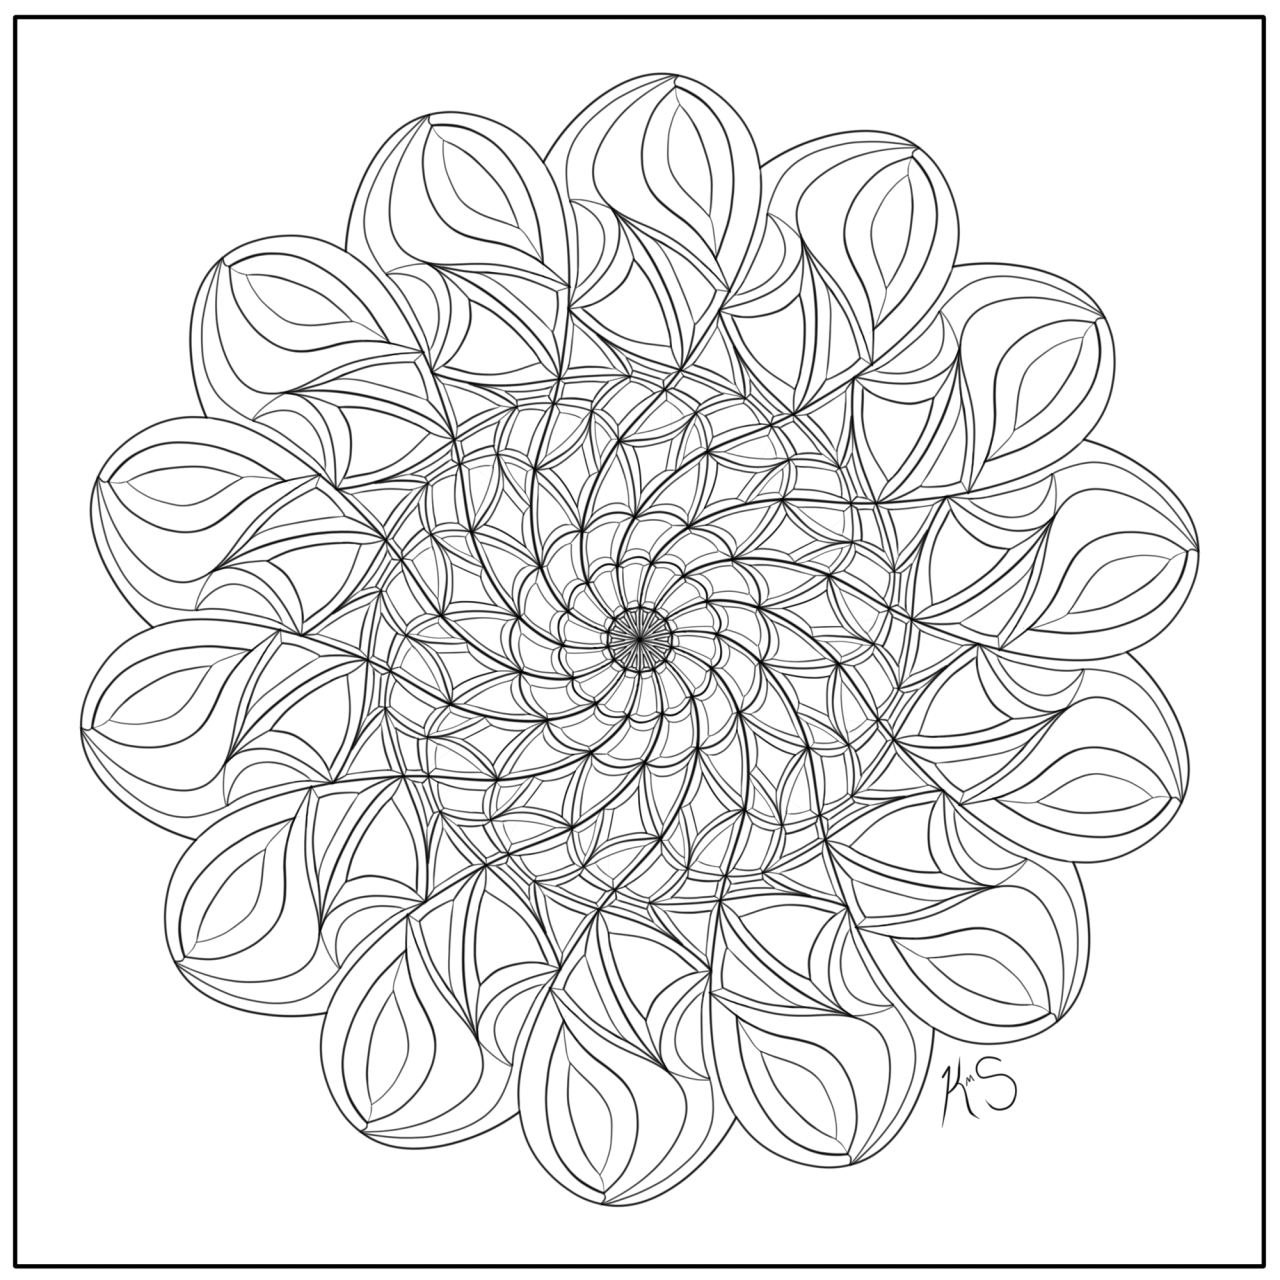 Relaxing Coloring Pages Coloring Pages